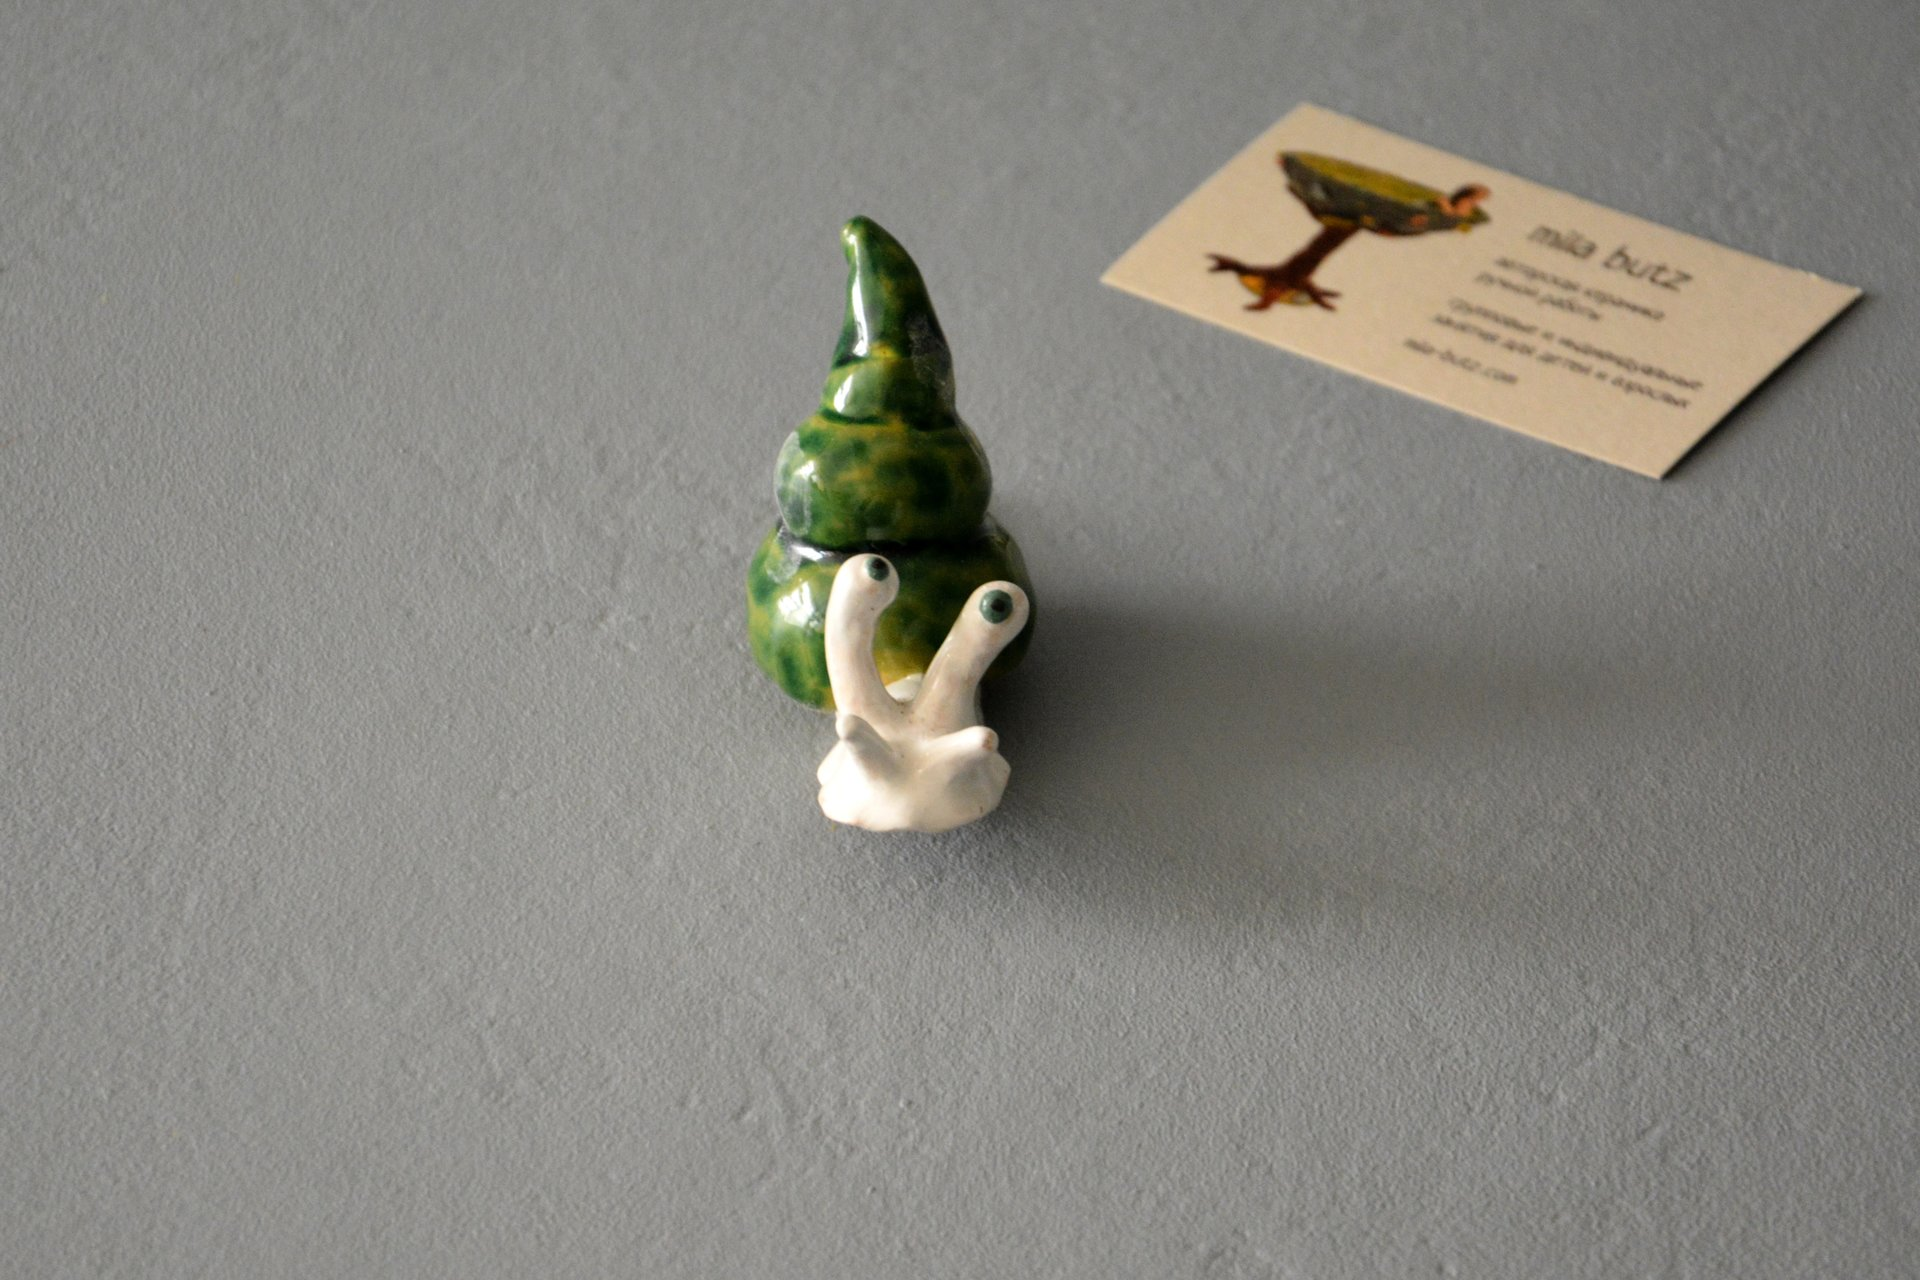 Figurine of a garden Cochlea, height - 3 cm, photo 2 of 6.